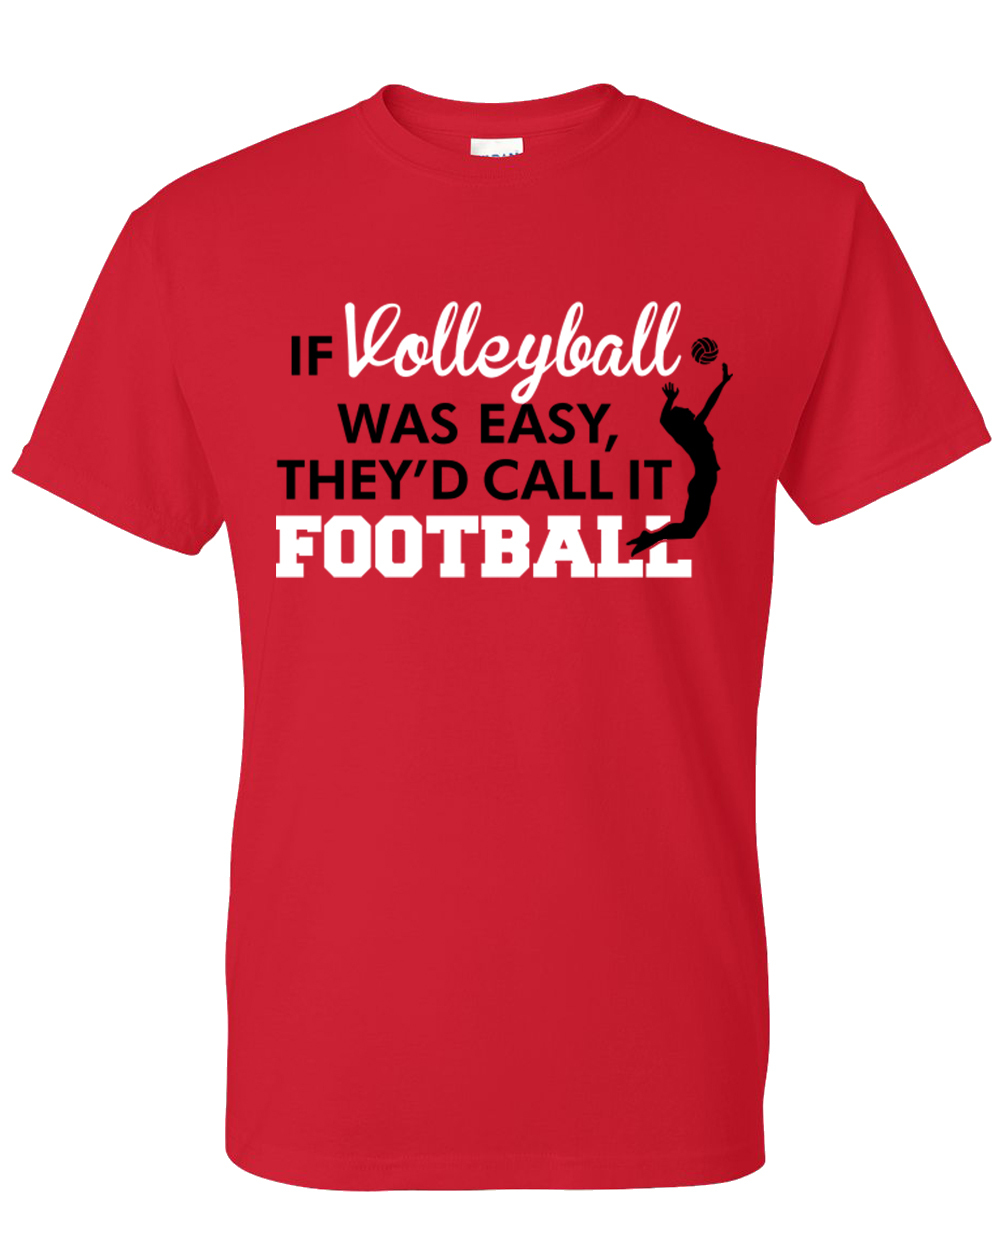 If Volleyball was easy they'd call it football t shirt ...